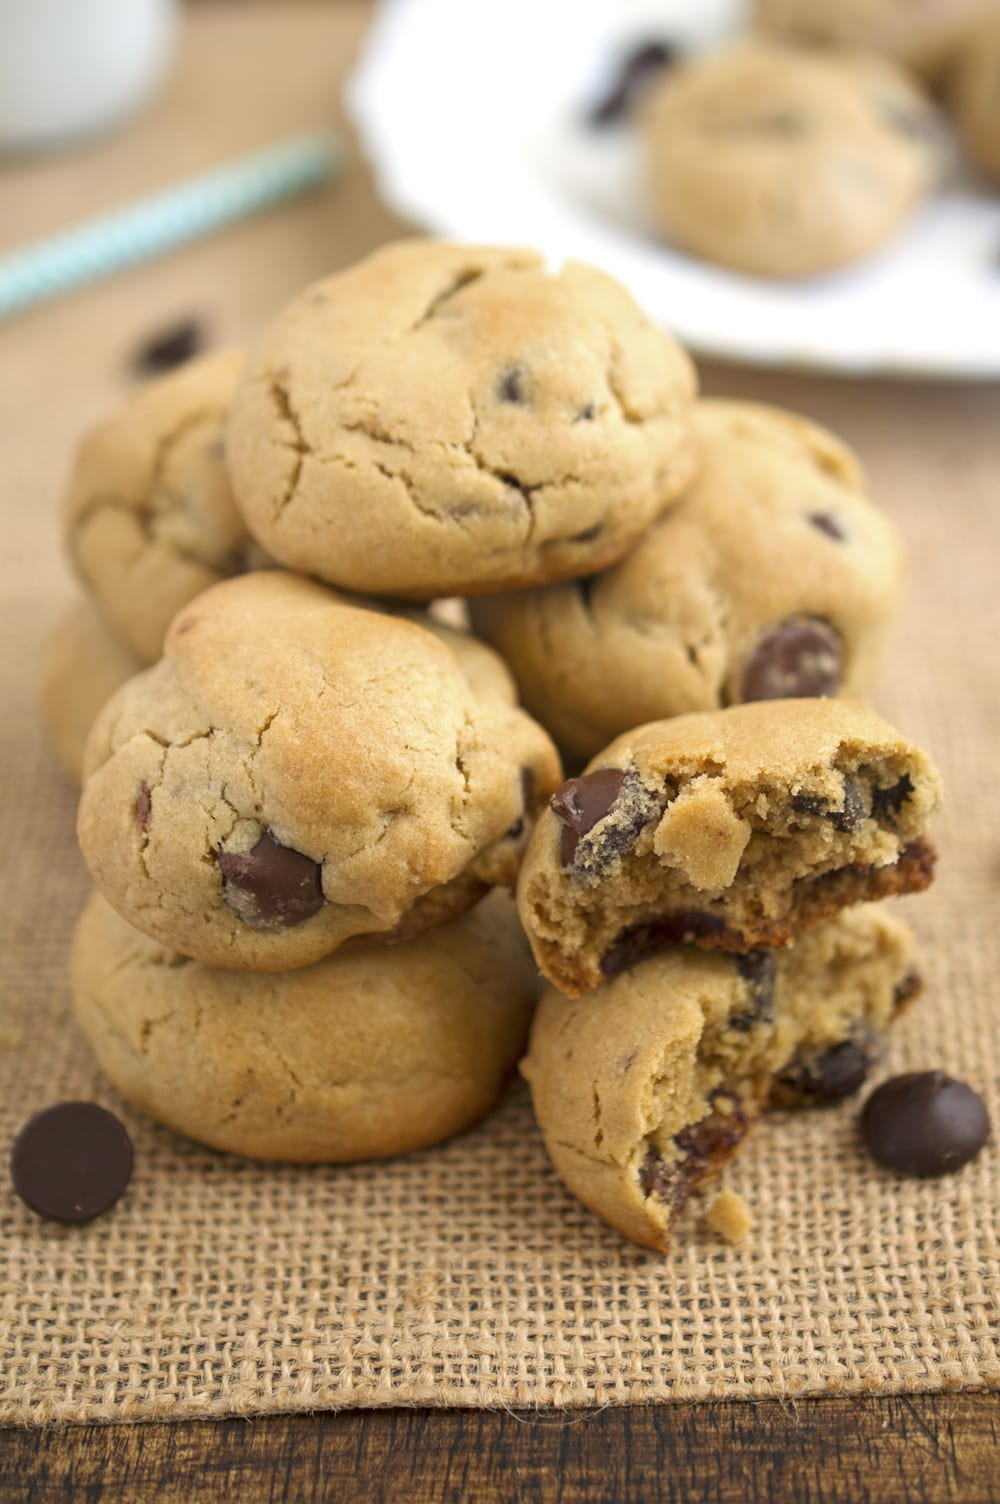 Peanut Butter Reese's And Chocolate Chip Cookies